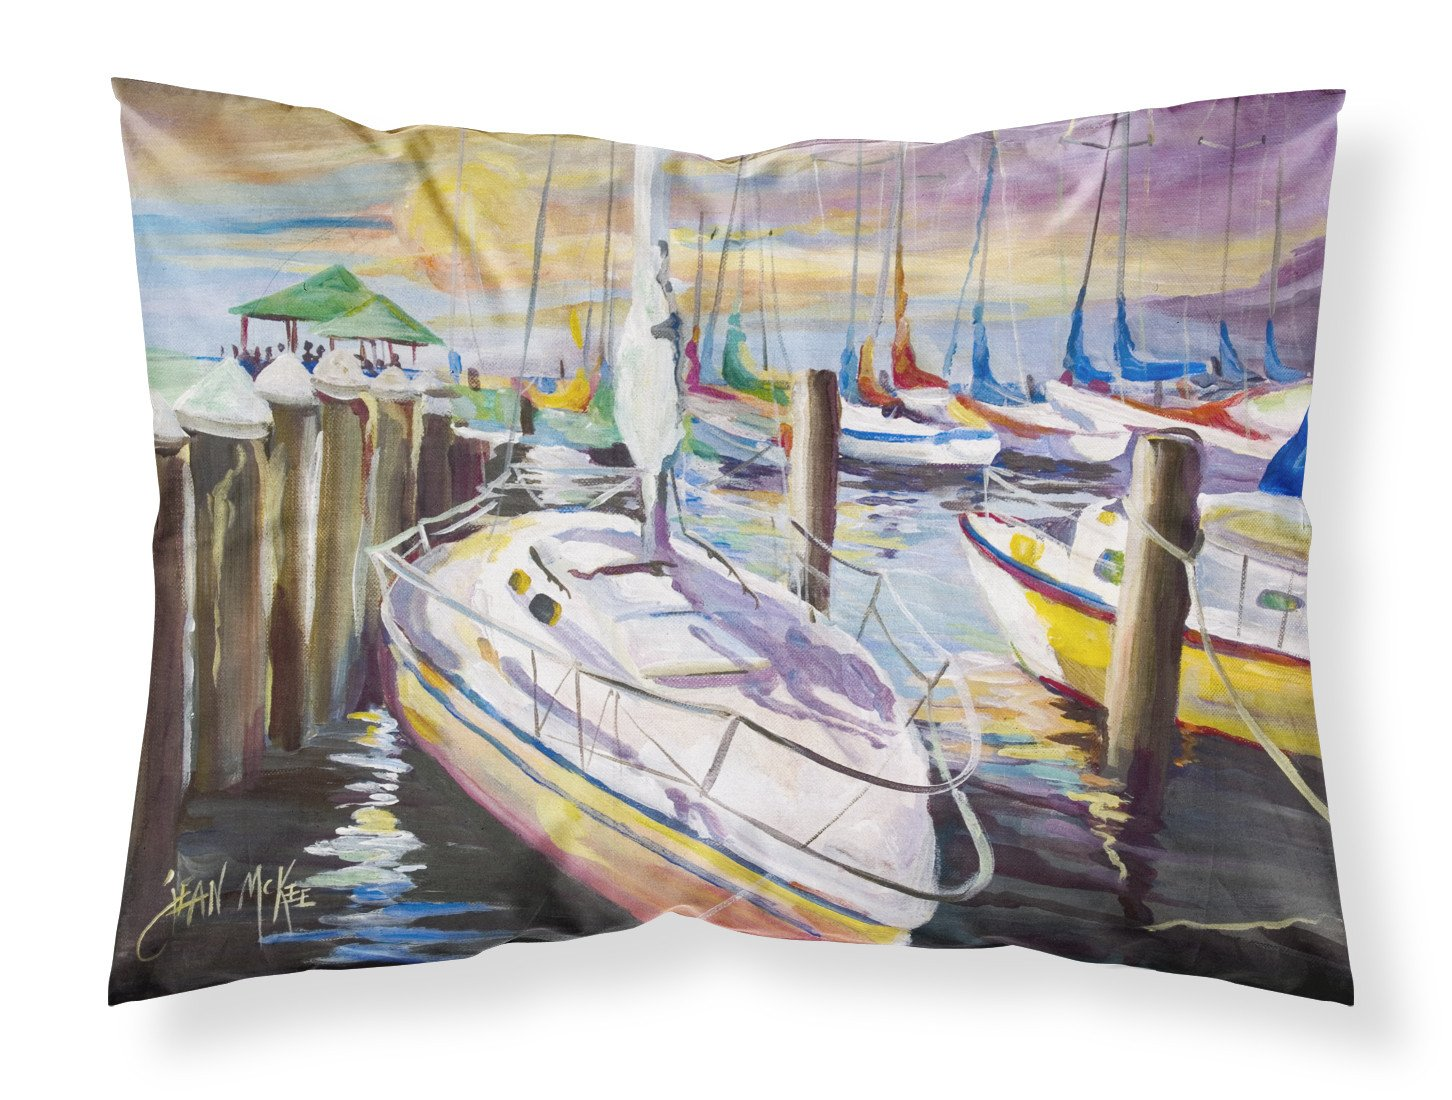 Sailboats at the Fairhope Yacht Club Docks Fabric Standard Pillowcase by Caroline's Treasures